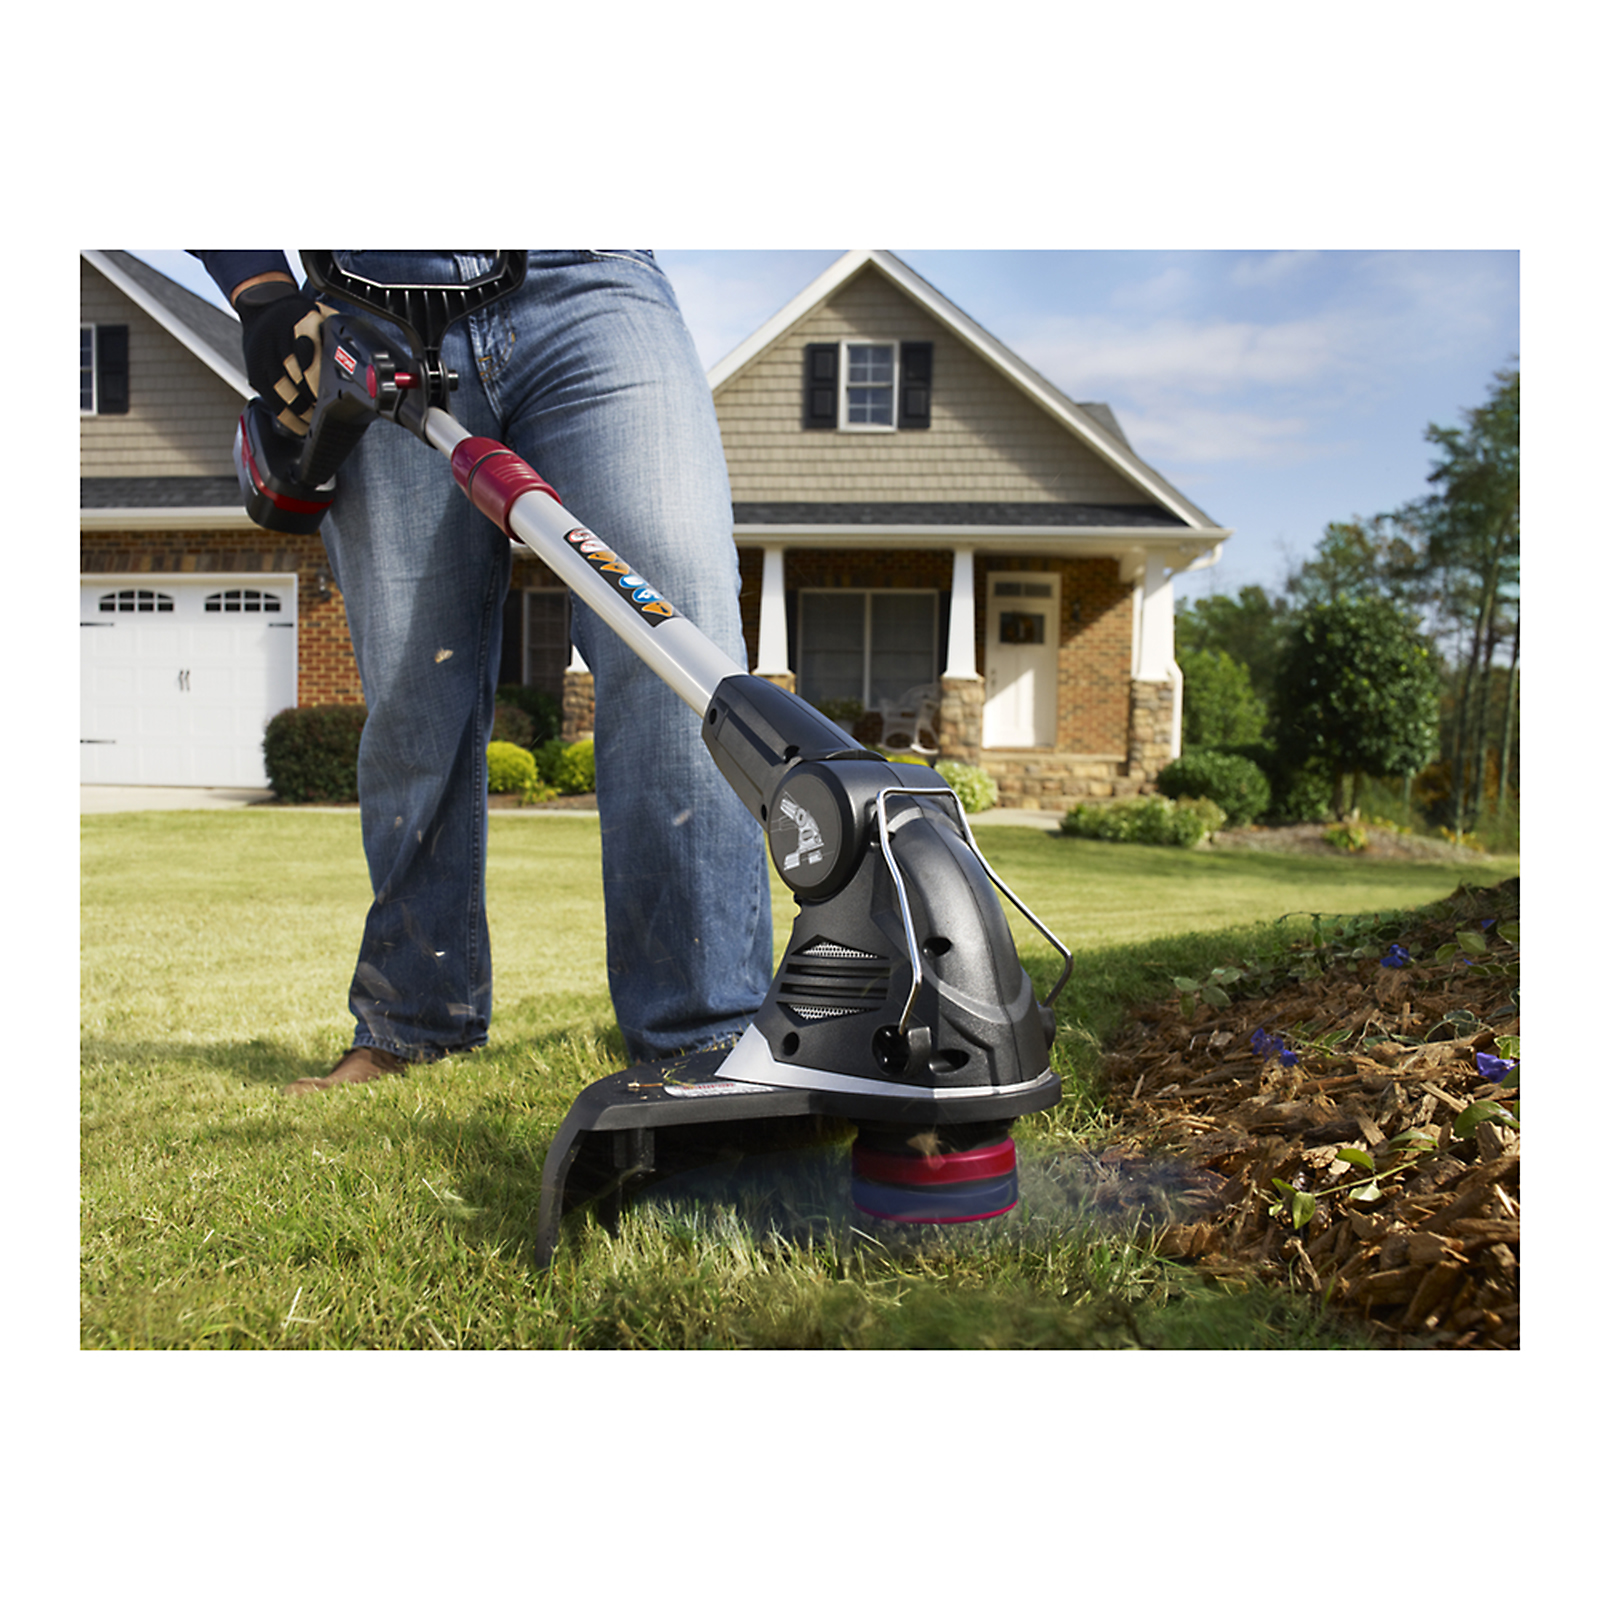 Craftsman 19.2V Cordless String Trimmer